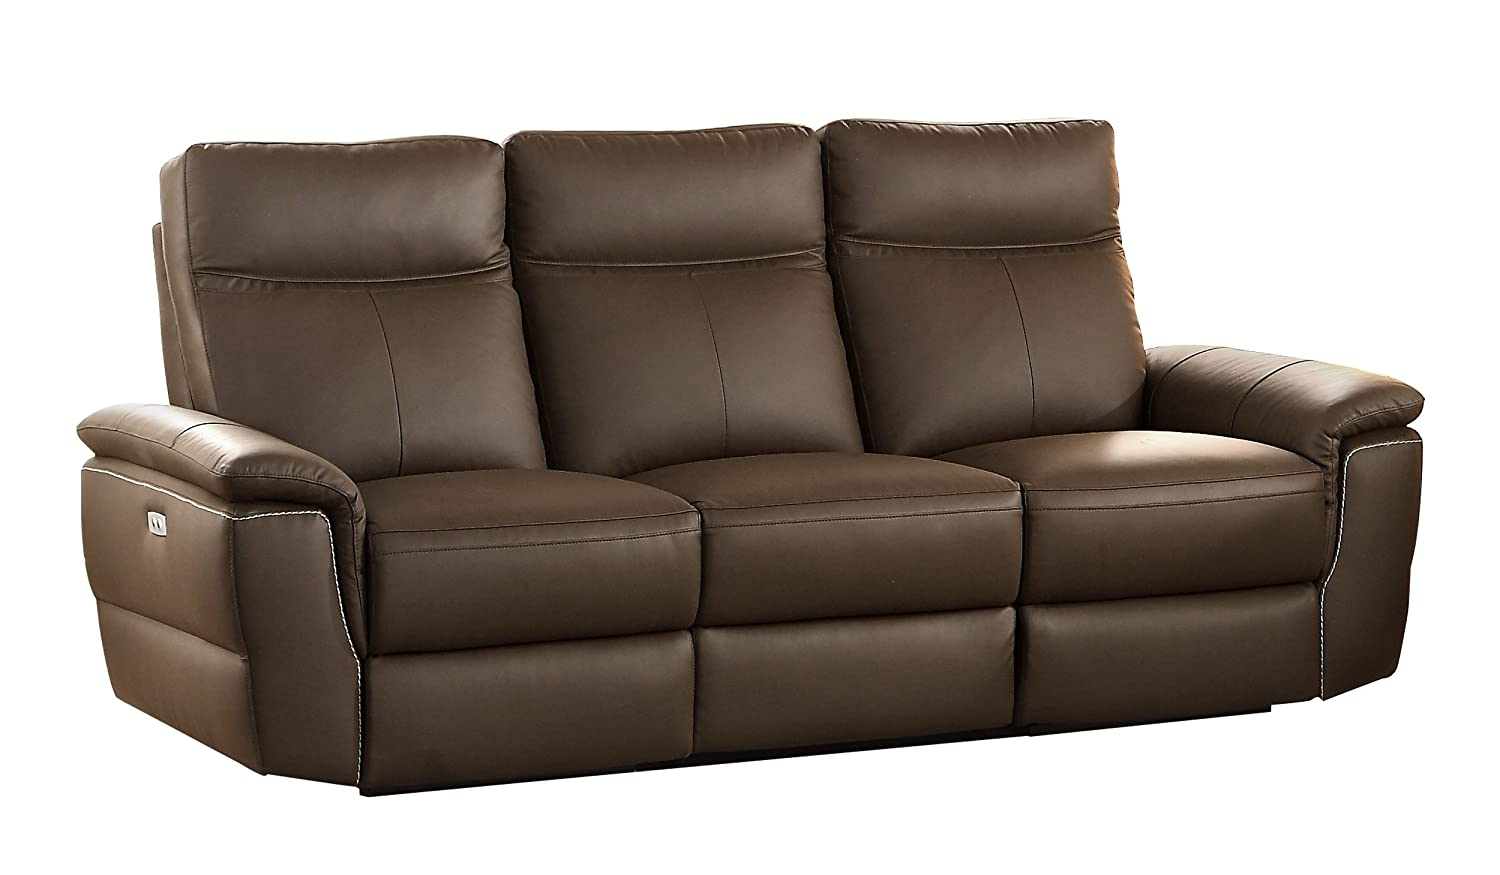 Homelegance Olympia Modern Design Power Reclining Sofa Top Grain Genuine  Leather Match, Raisin